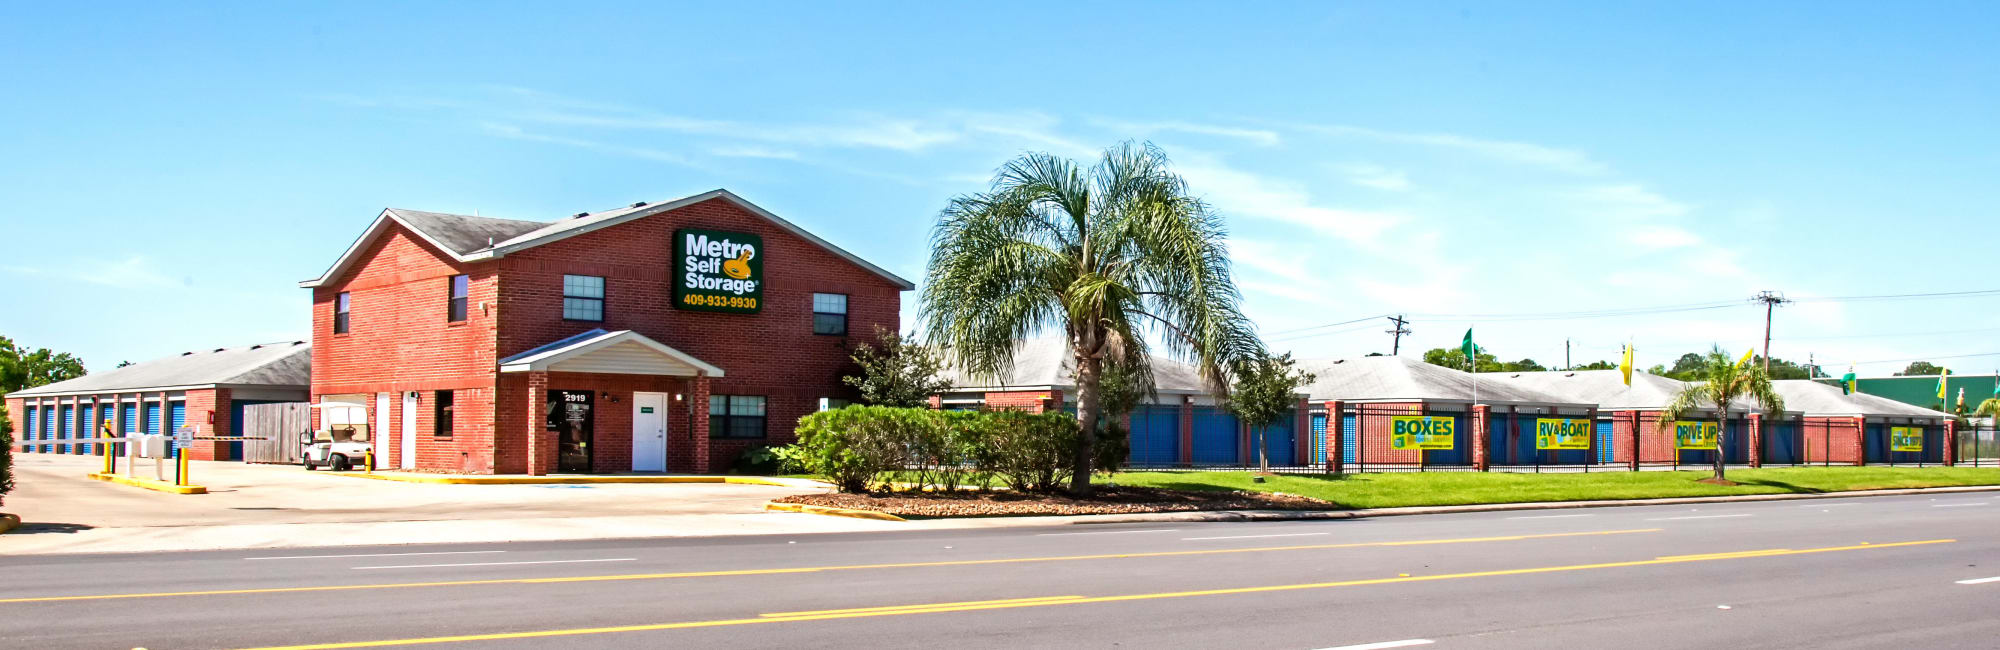 Metro Self Storage in La Marque, TX